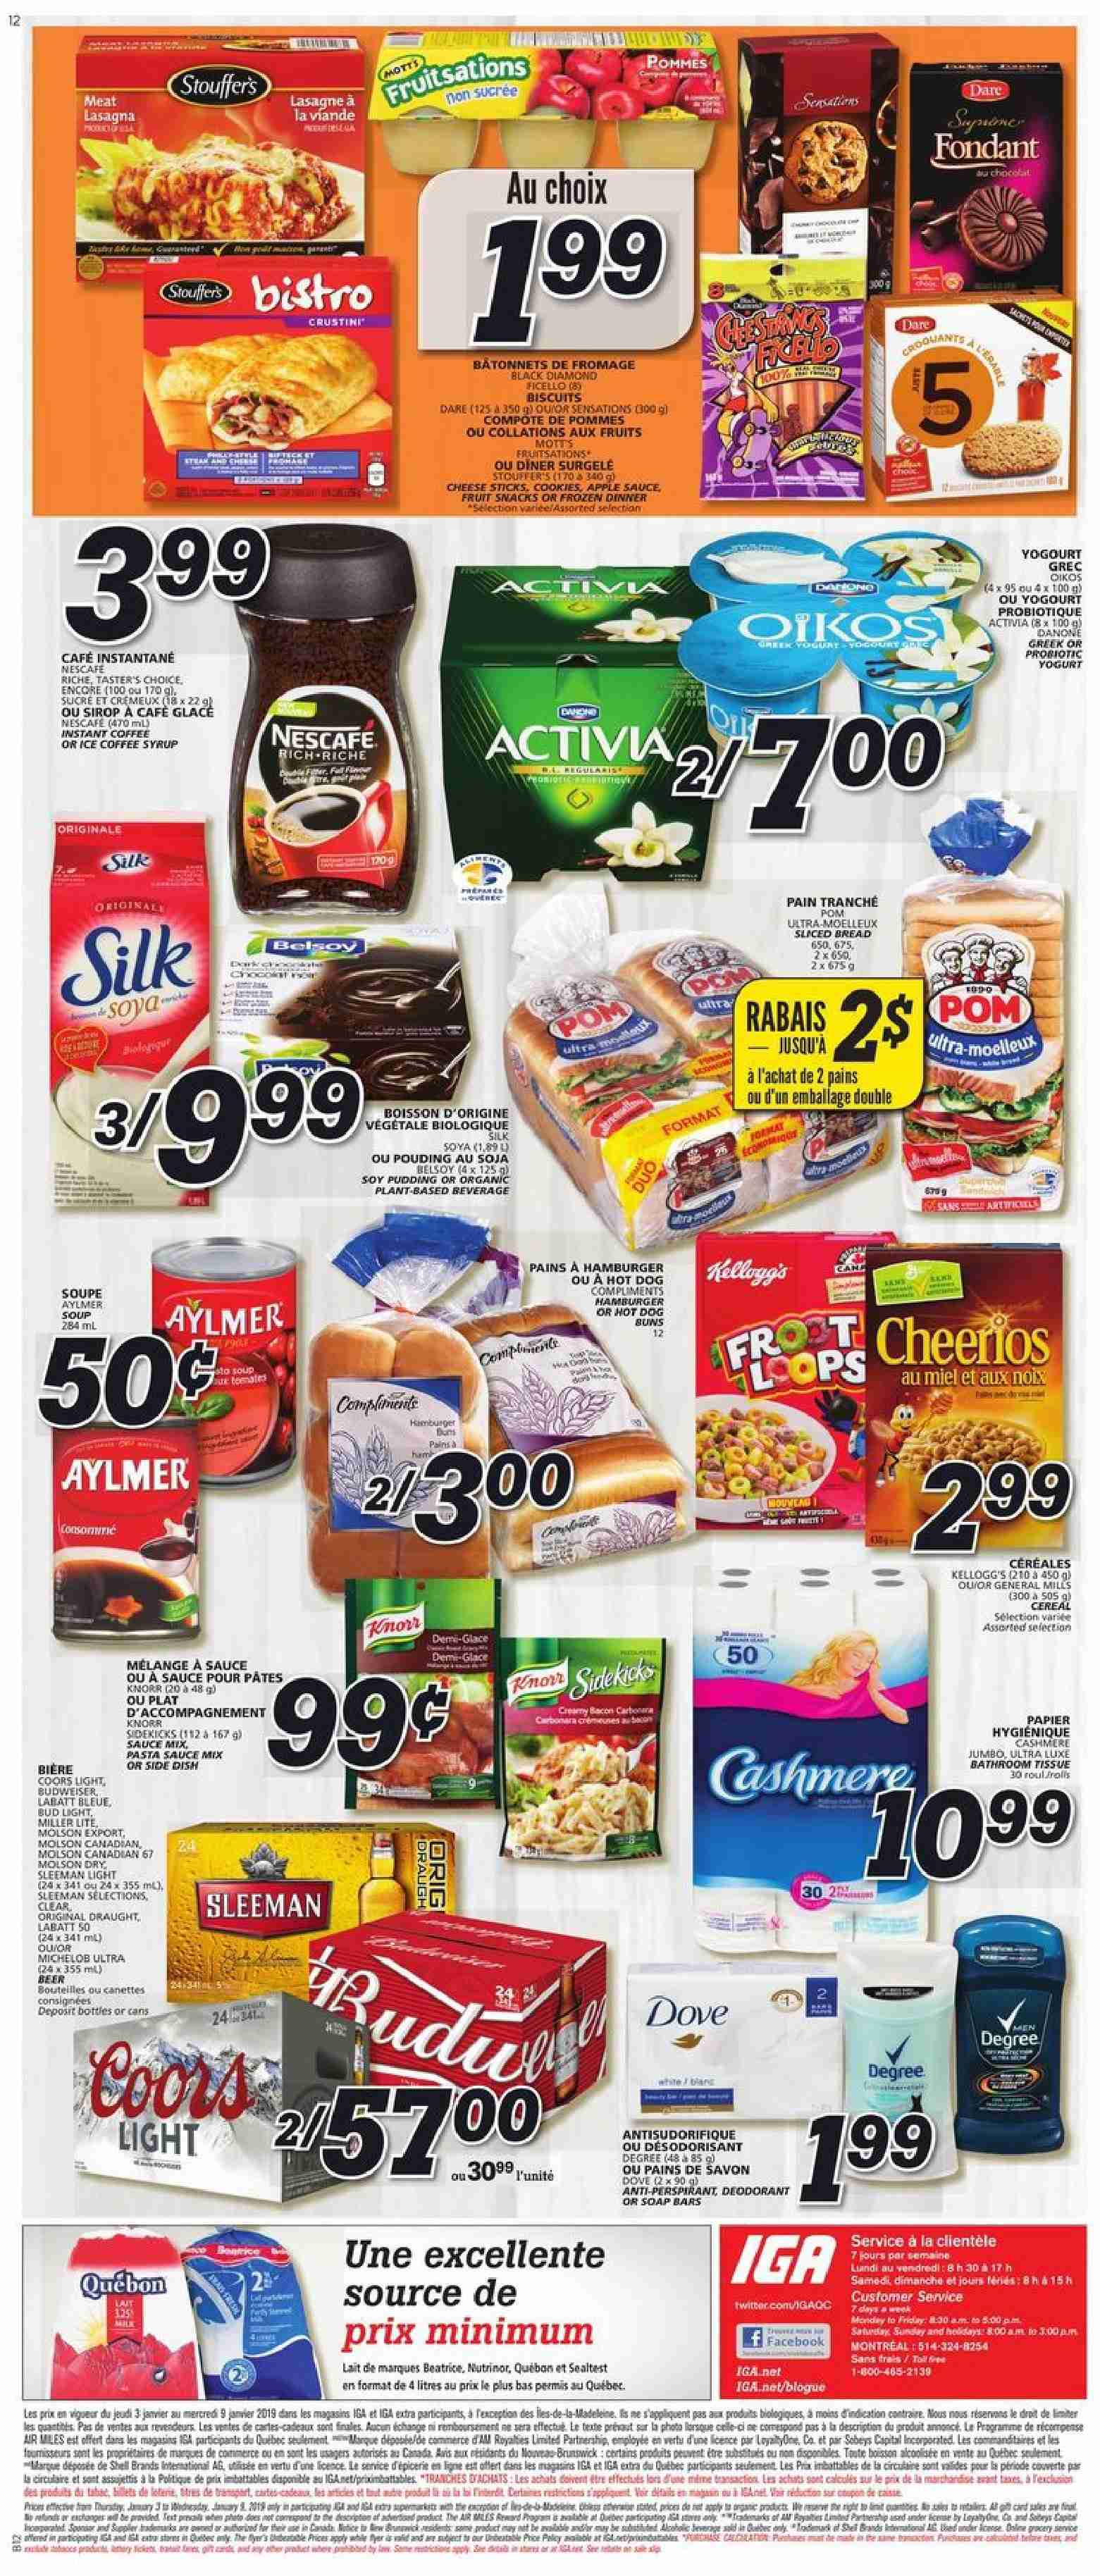 IGA Flyer  - January 03, 2019 - January 09, 2019. Page 12.